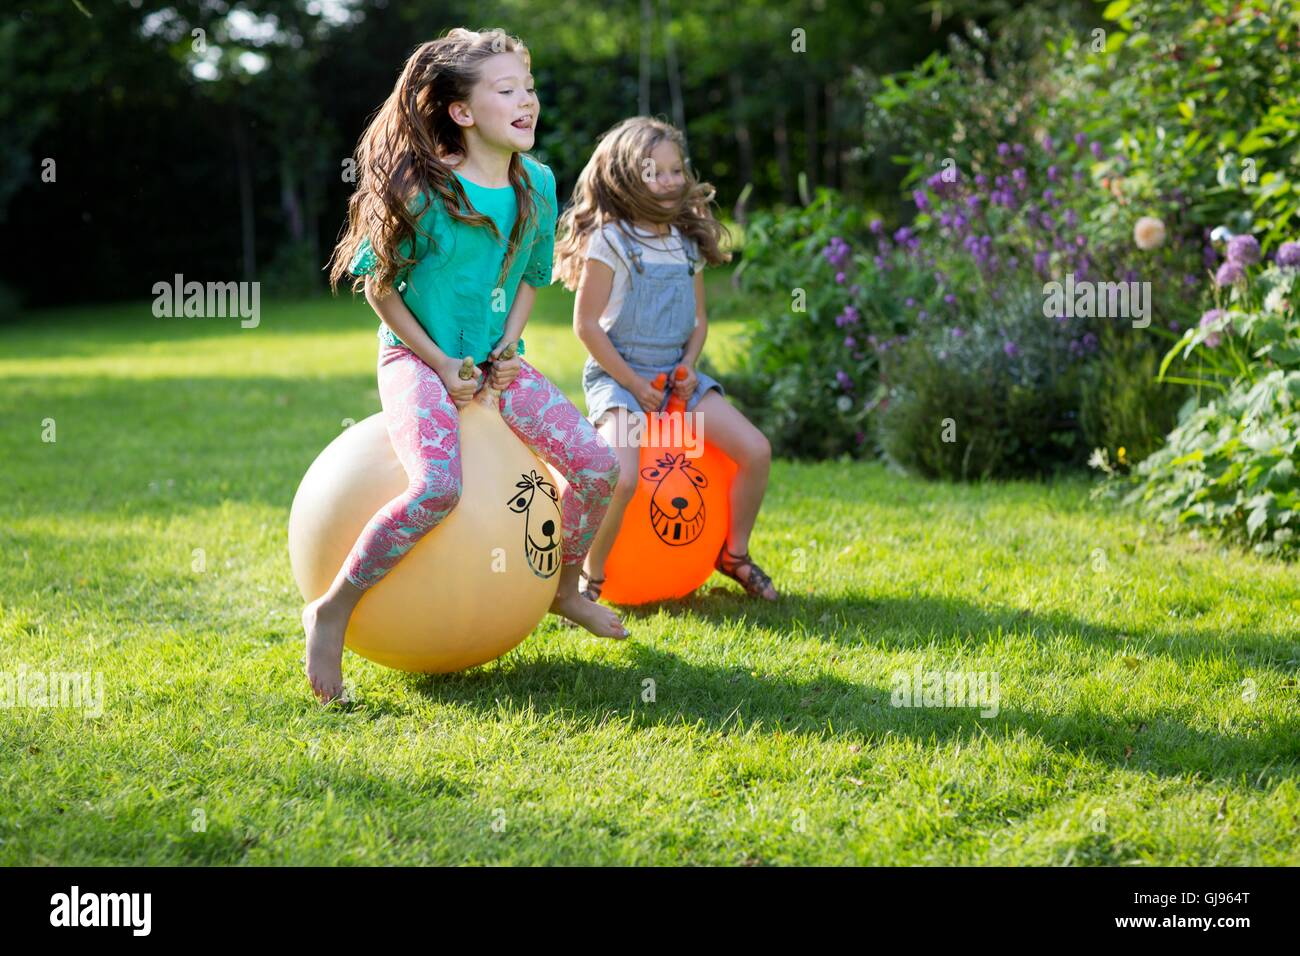 PROPERTY RELEASED. MODEL RELEASED. Two sisters bouncing on bouncy hoppers in the garden. - Stock Image